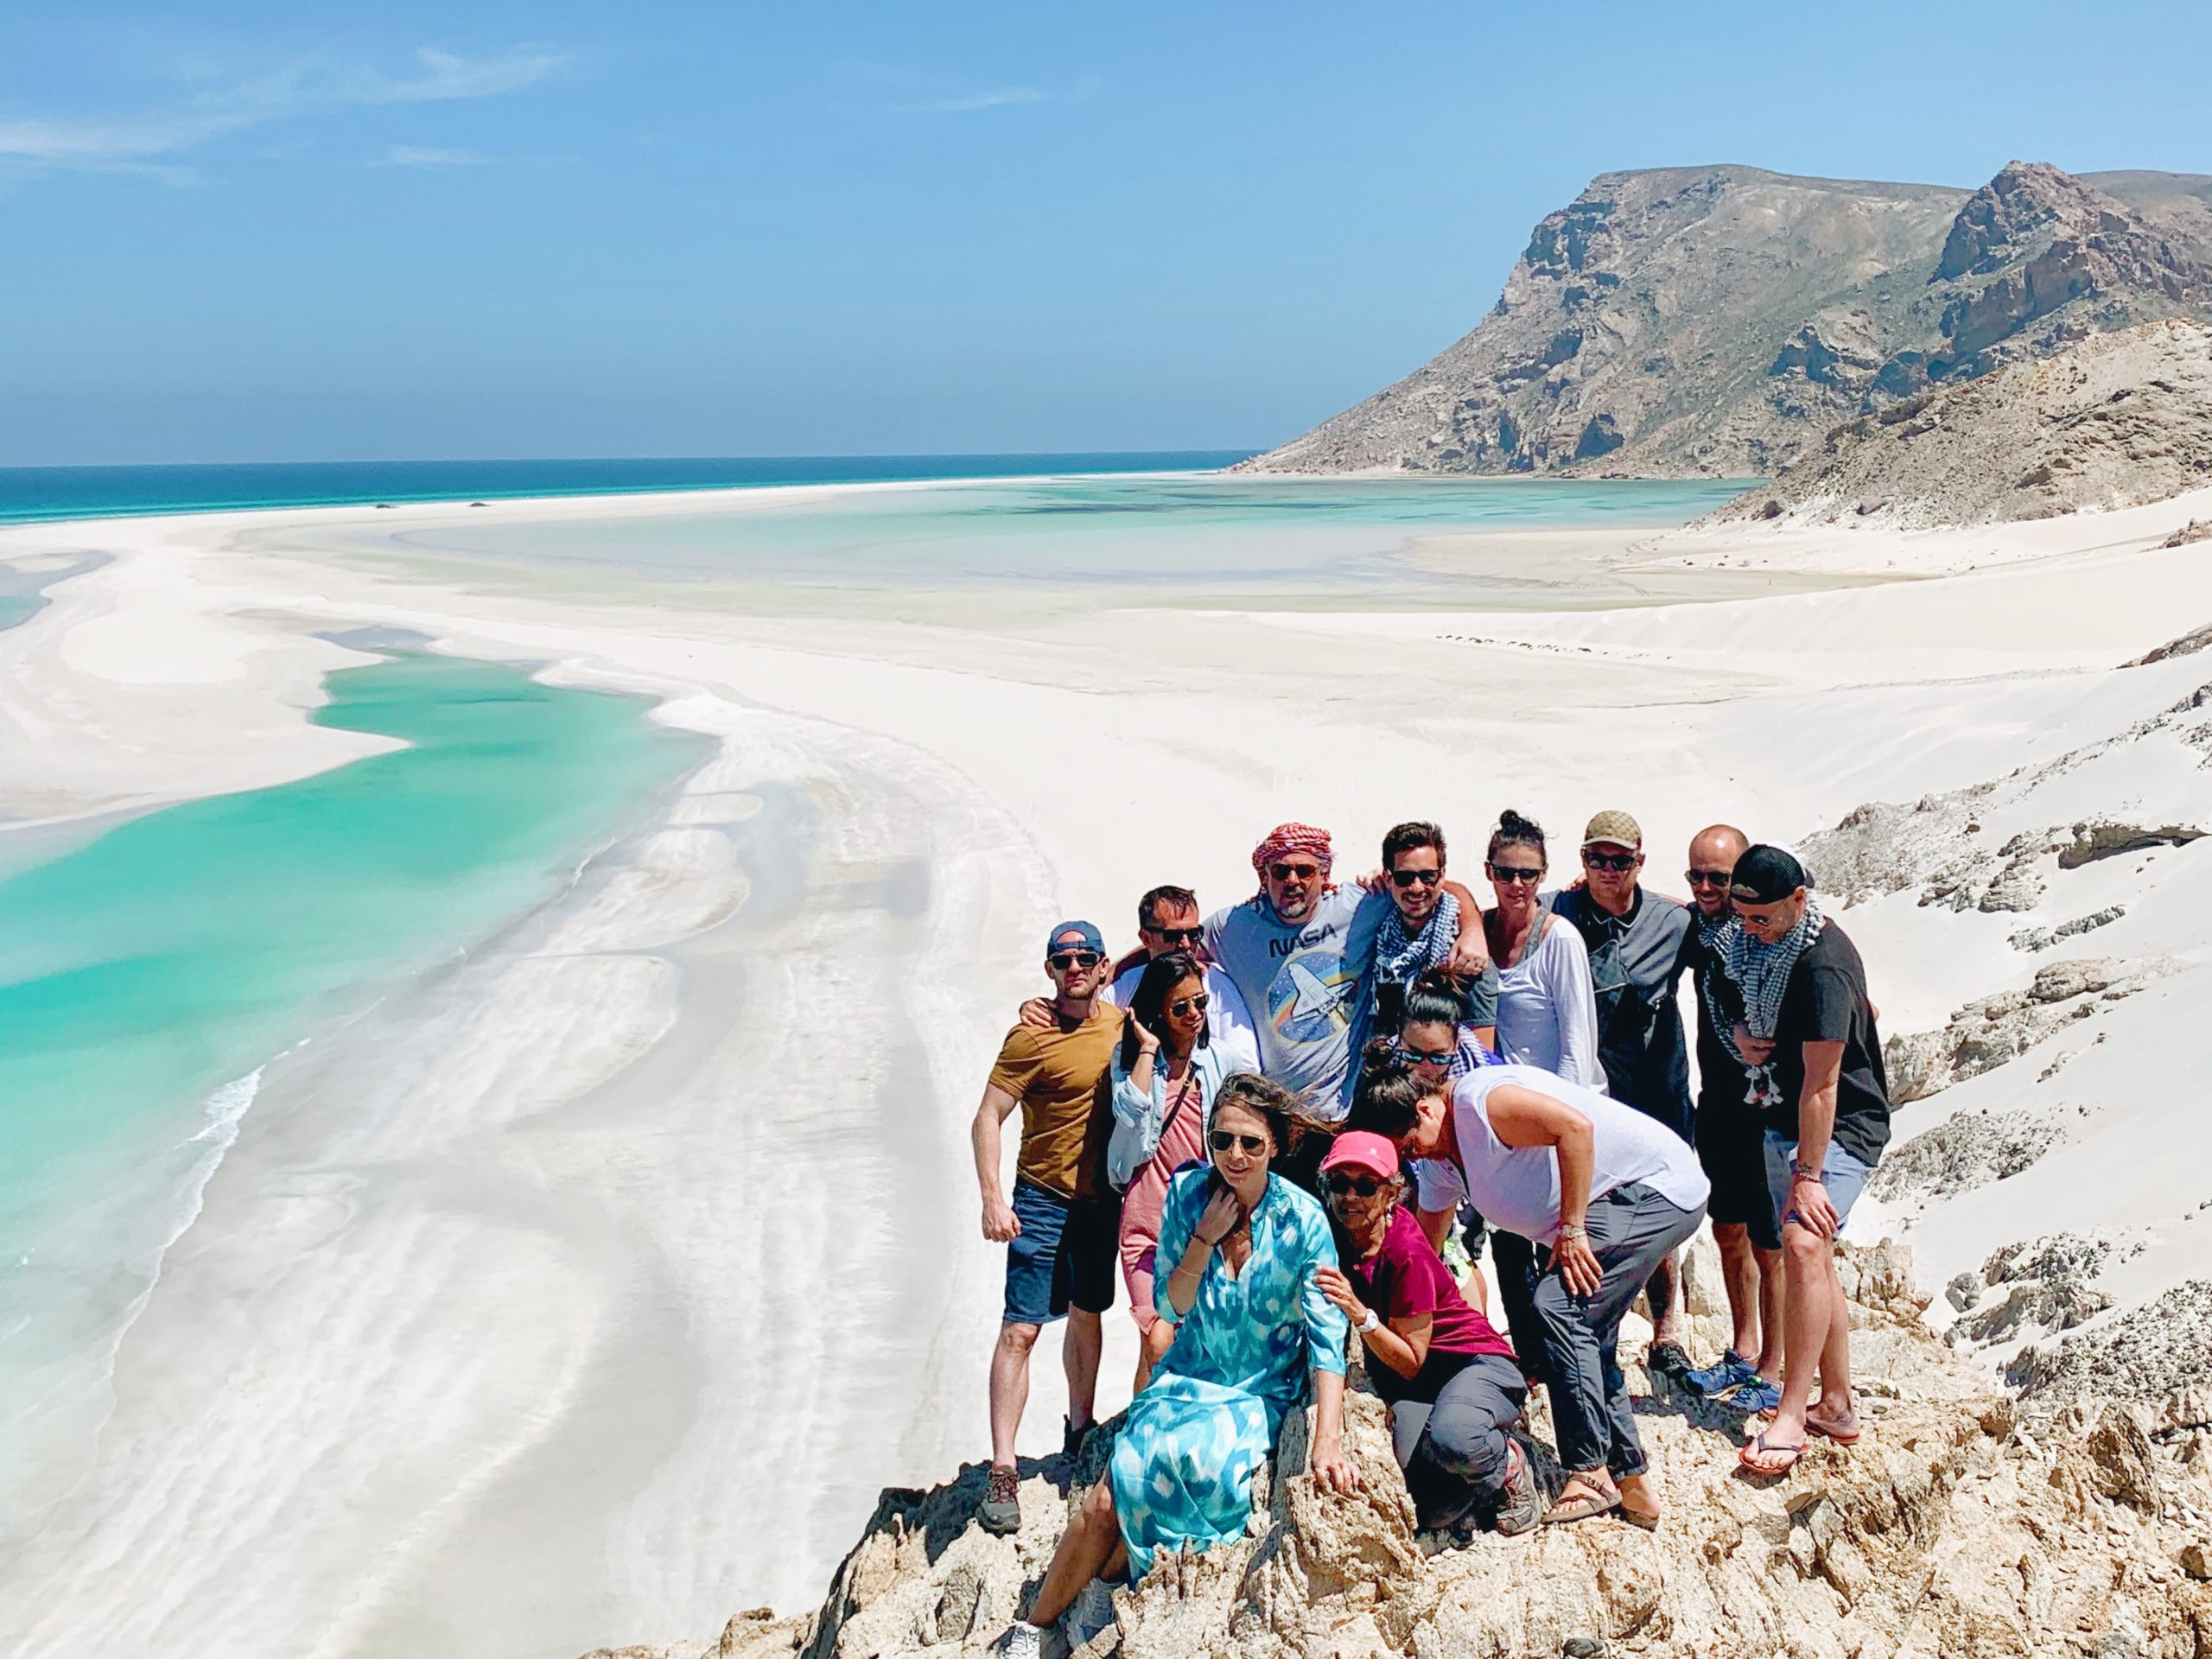 Tour to socotra